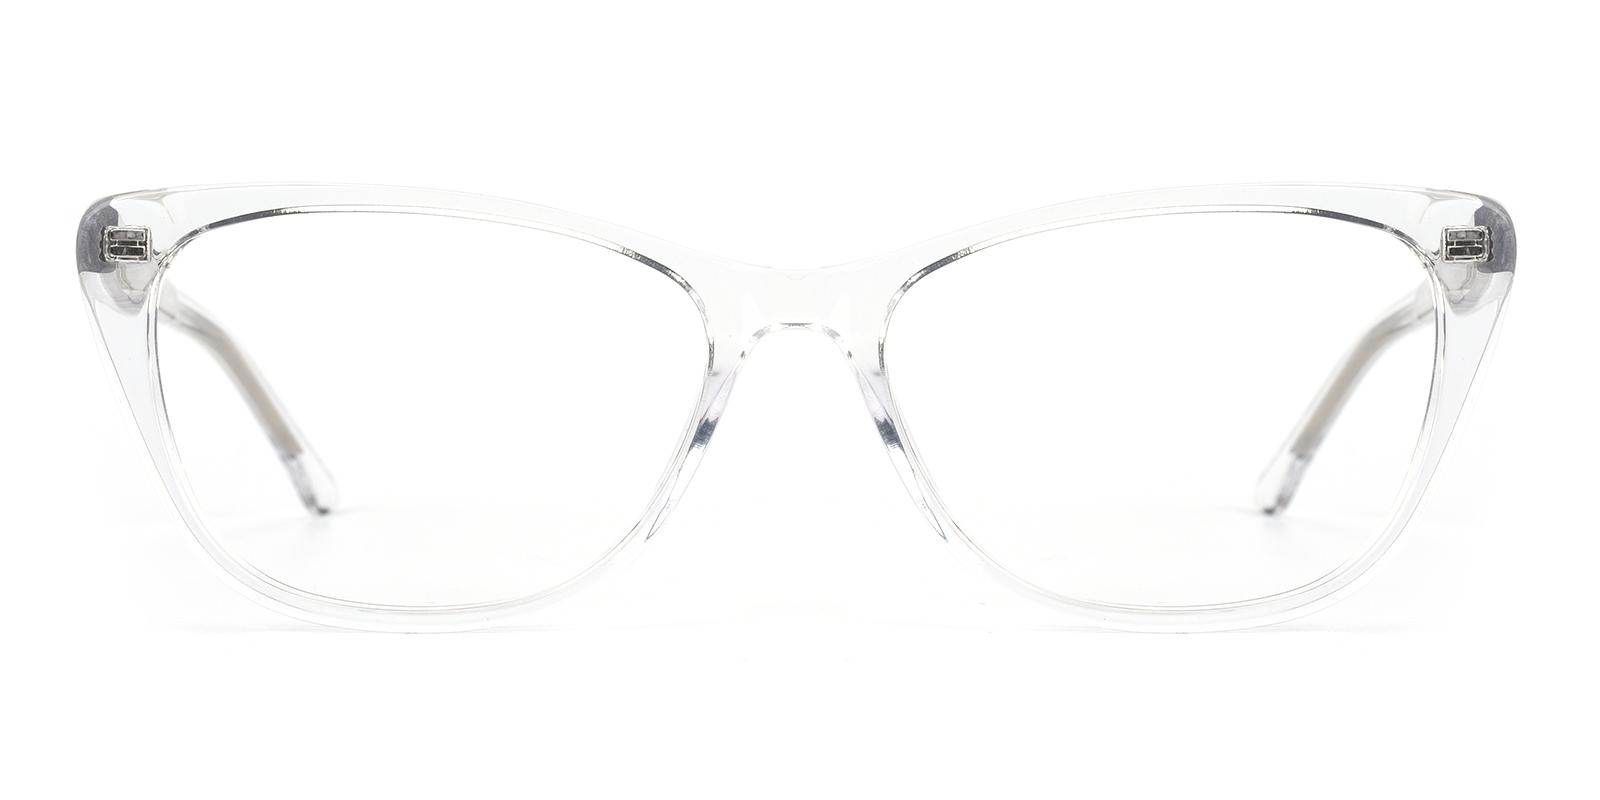 Tersaki-Translucent-Cat-Acetate-Eyeglasses-additional2